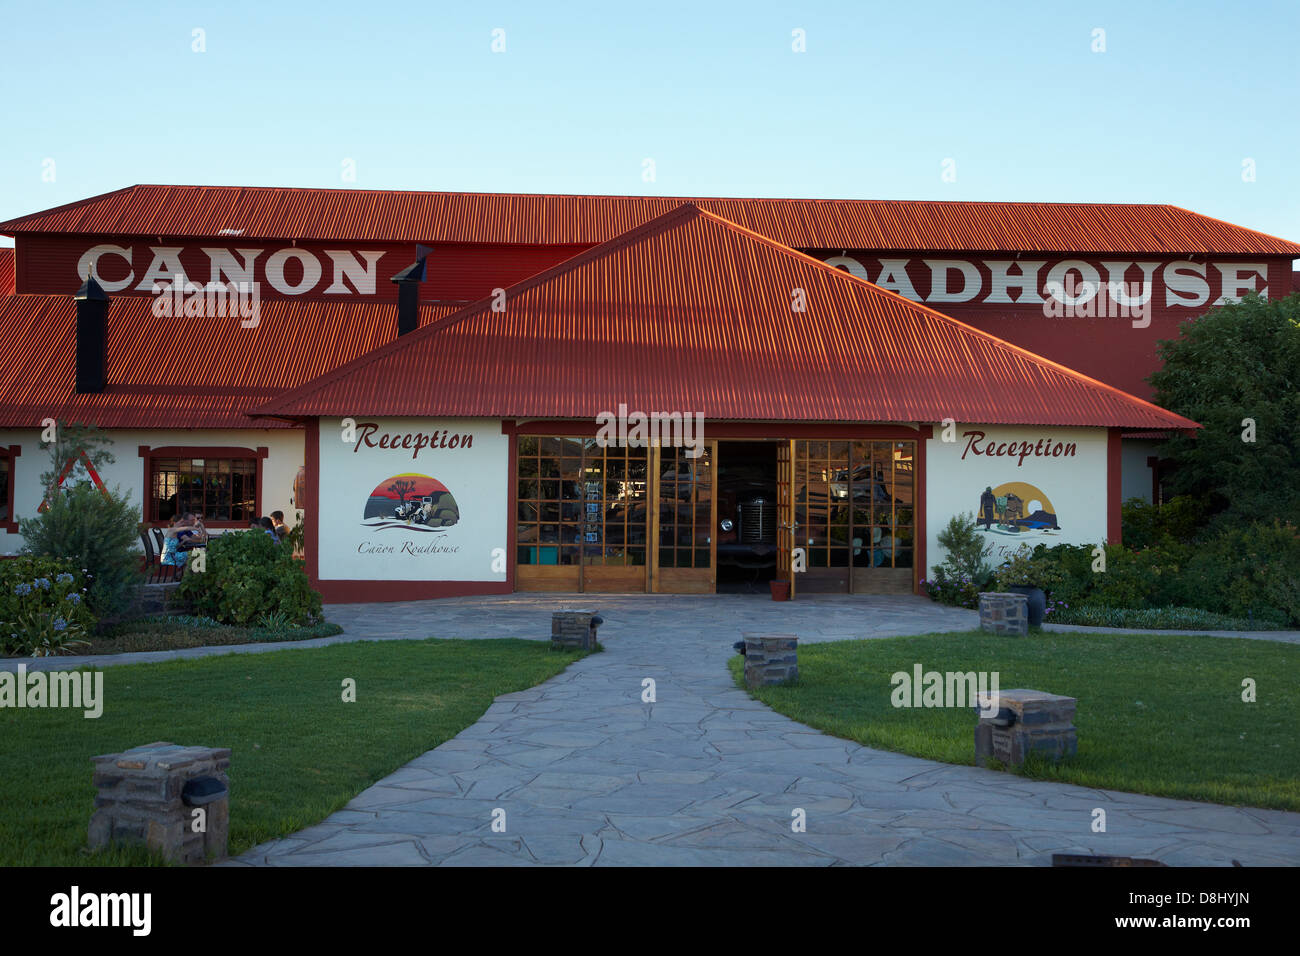 Canon Roadhouse, near Fish River Canyon, Southern Namibia, Africa - Stock Image